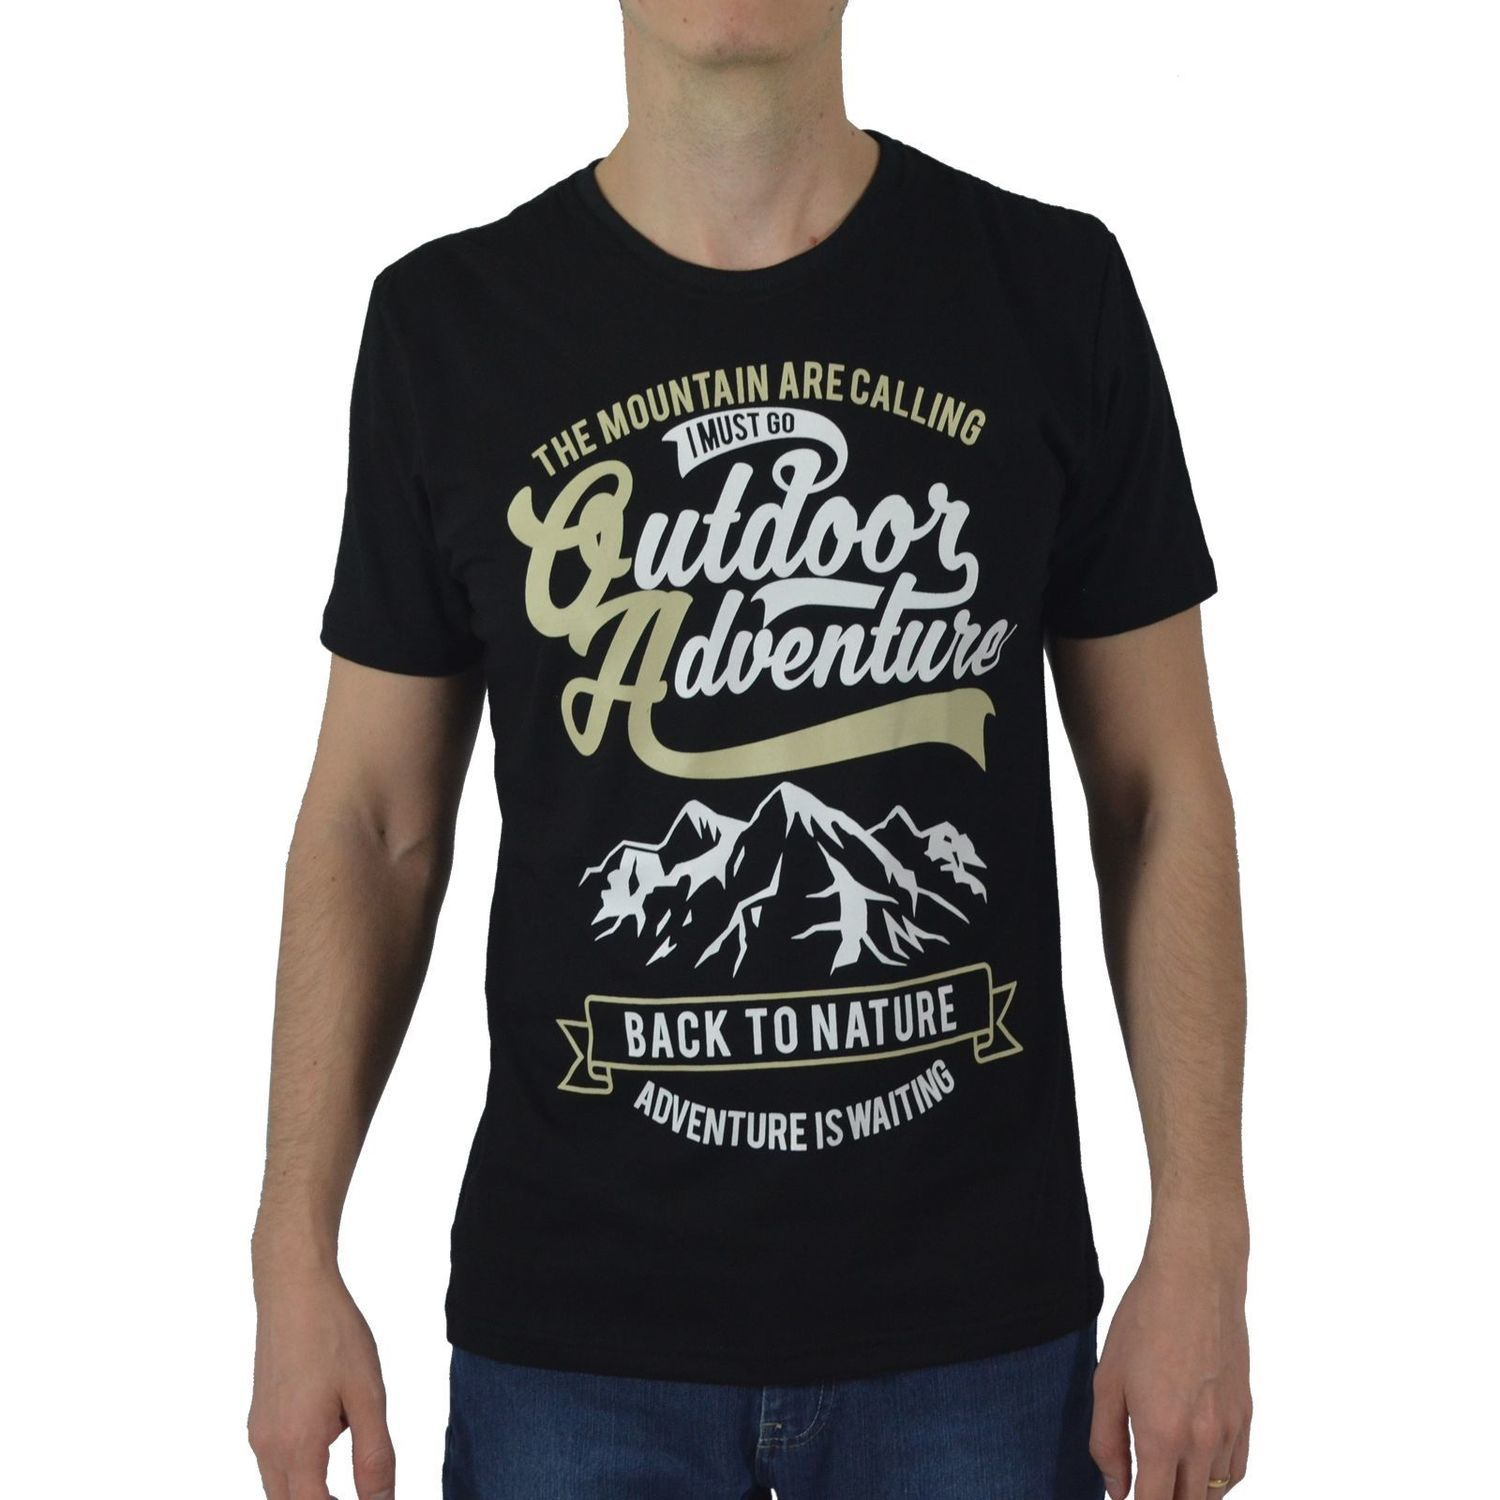 Camiseta Masculina Fallon & Co. Outdoor Adventure Preta